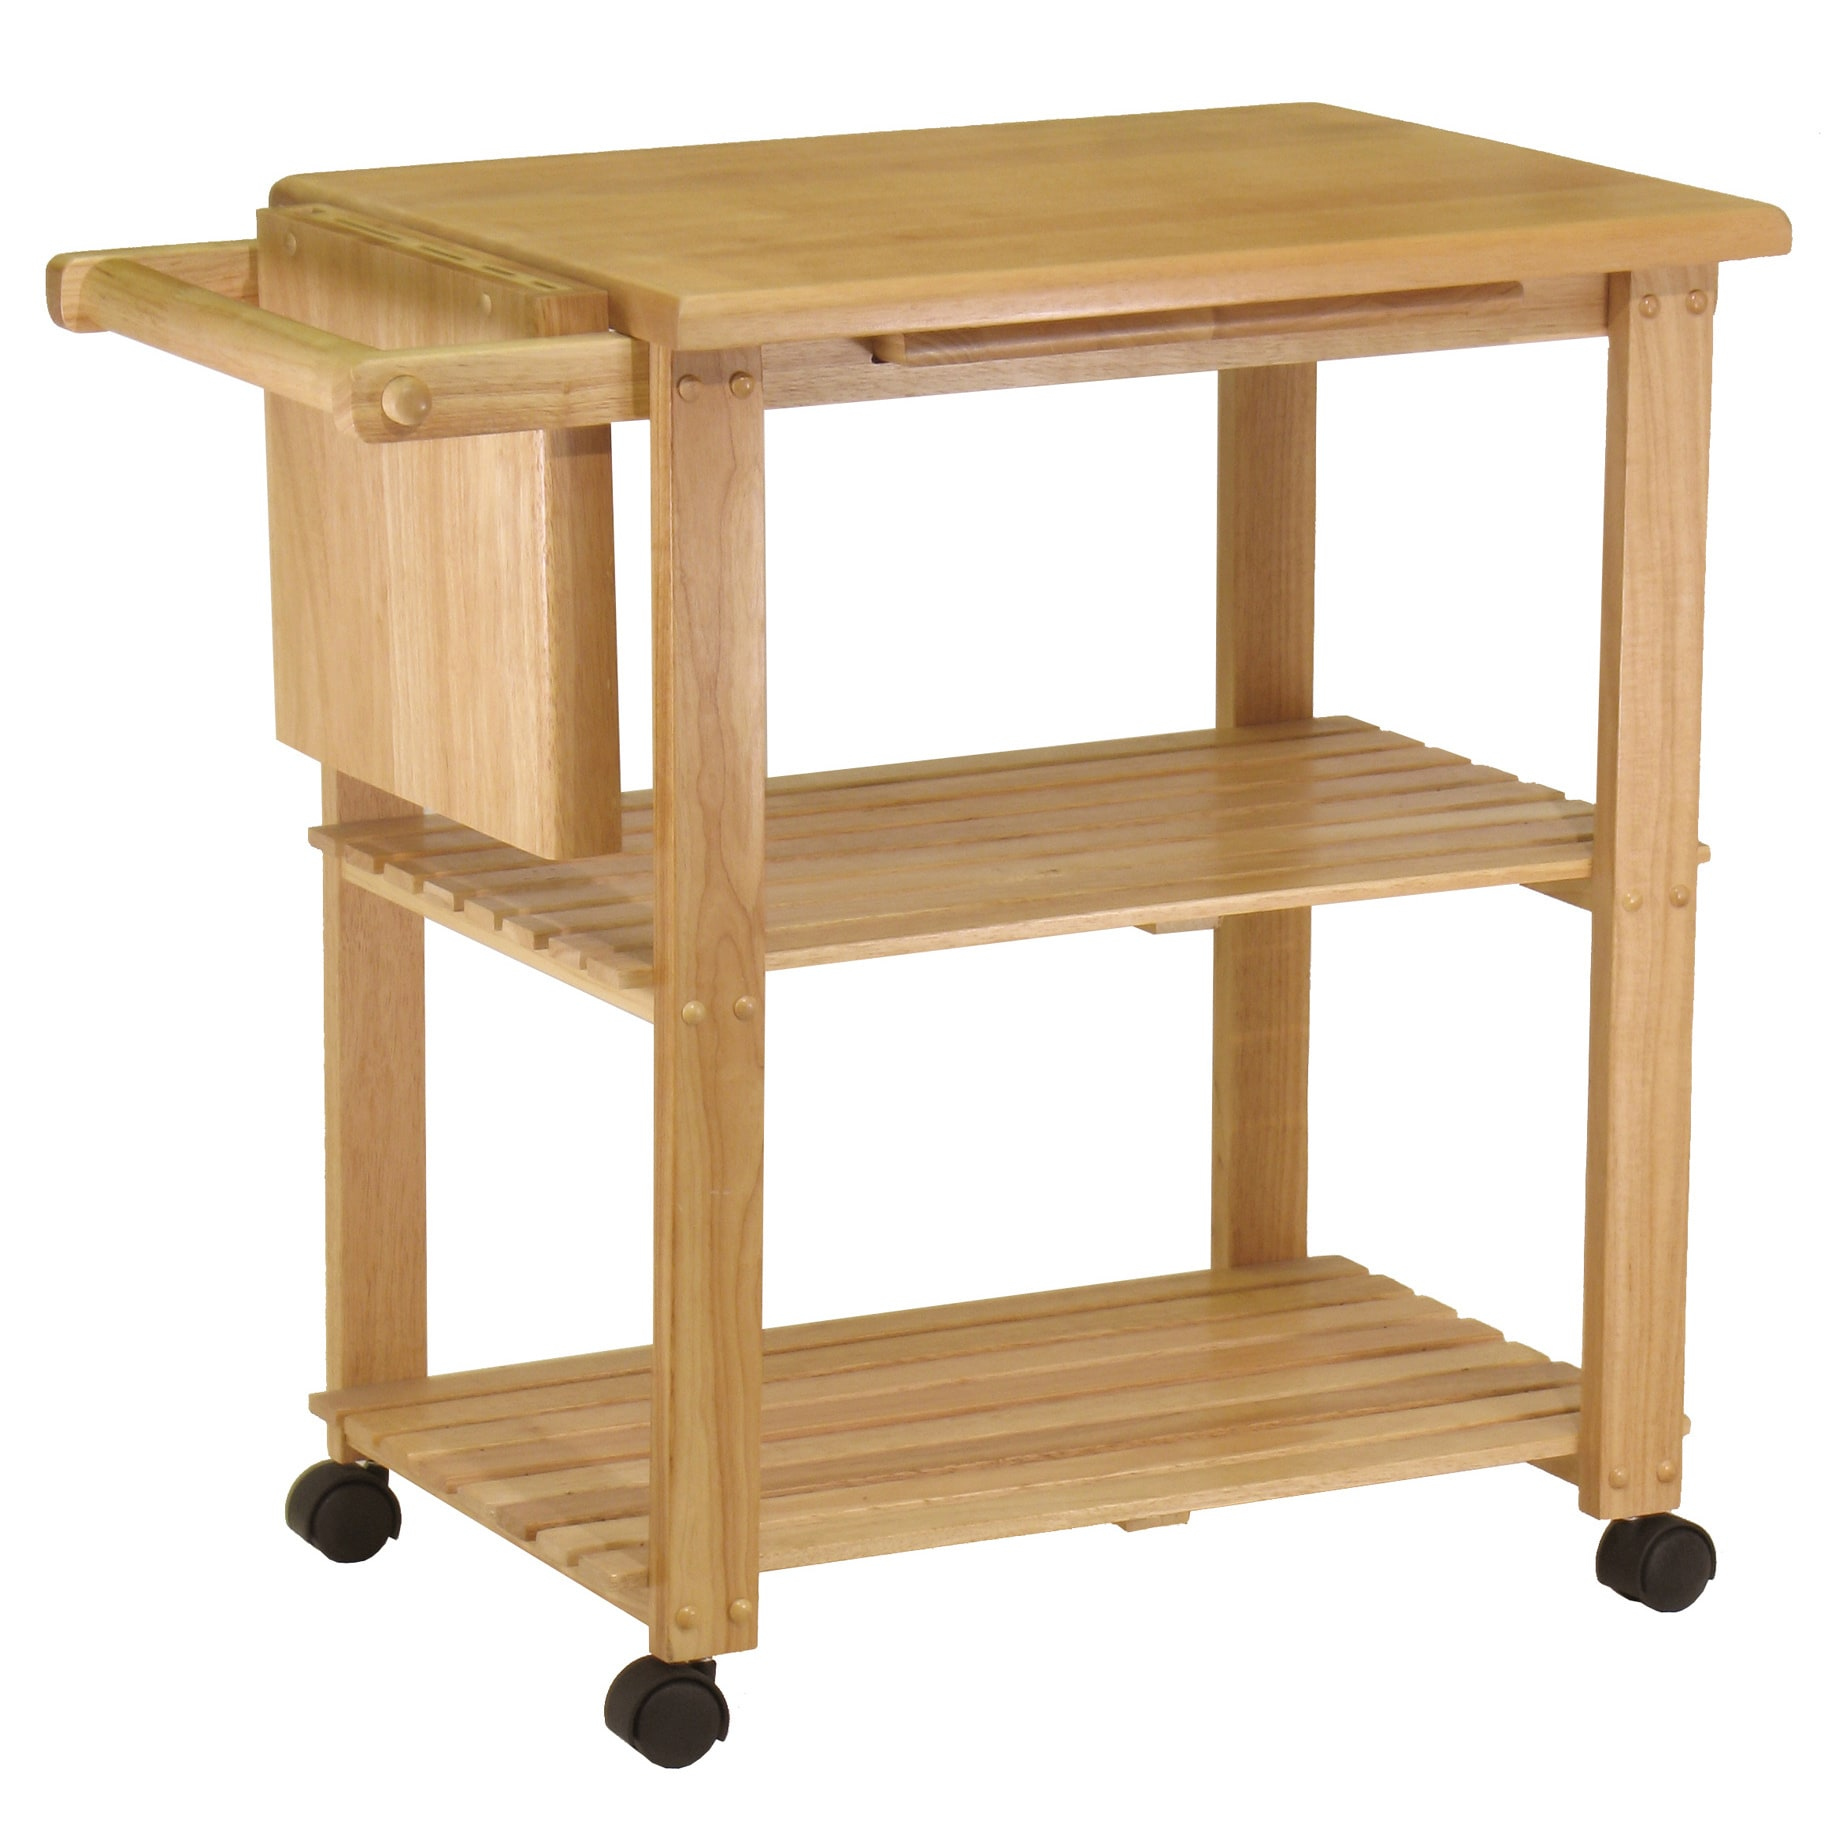 Winsome Wooden Storage Kitchen Utility Cart with Pull-out...